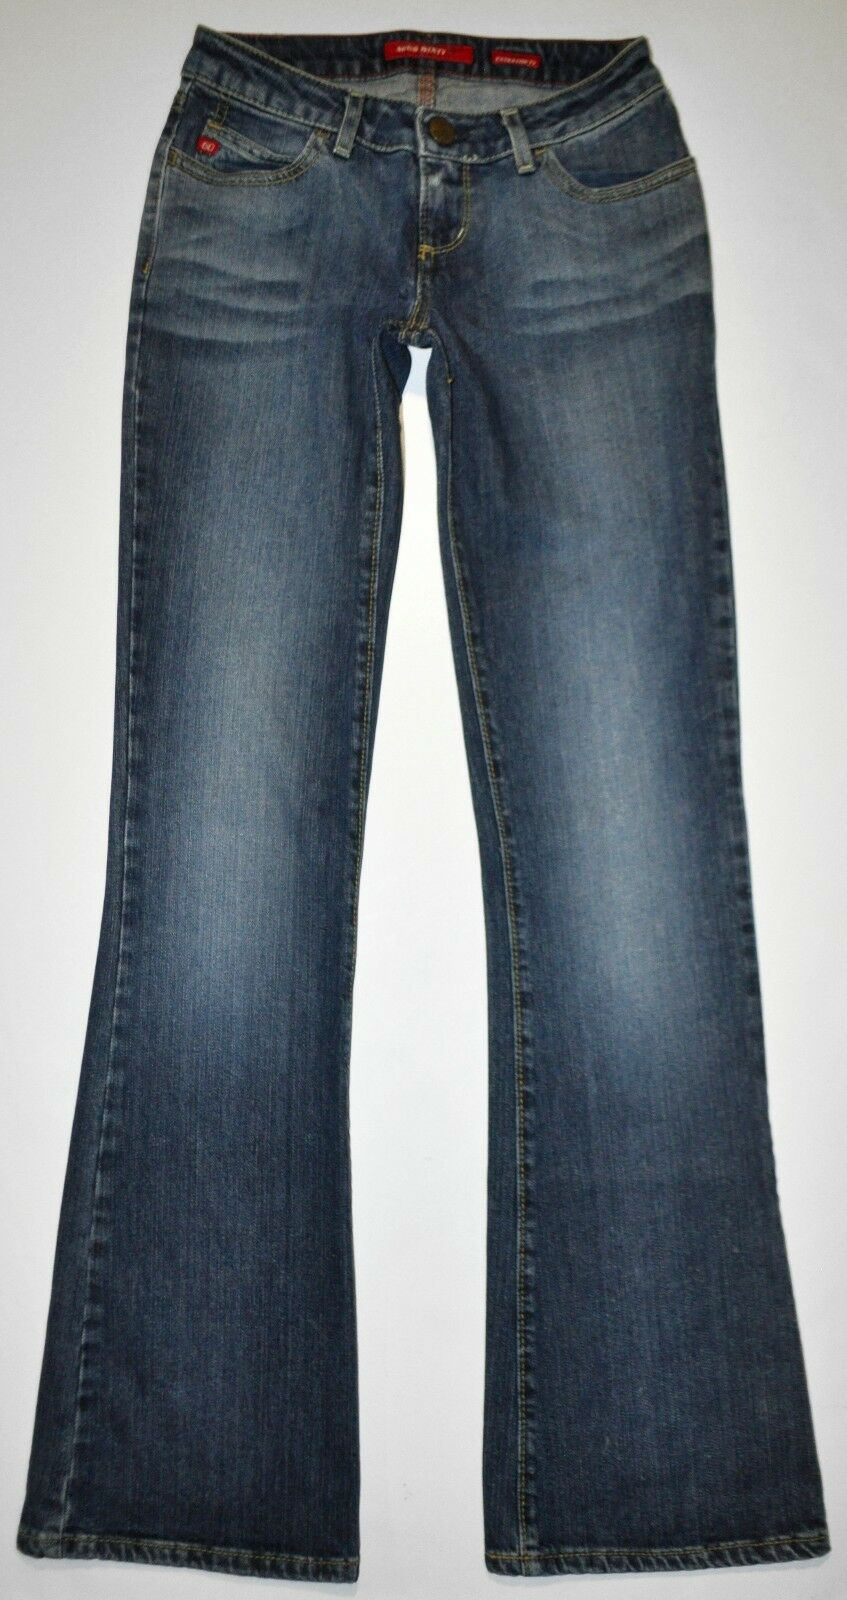 Miss Sixty Women's Sz 27 X 32.5 Stretch Extra Low Ty Jeans Flare Factory Faded